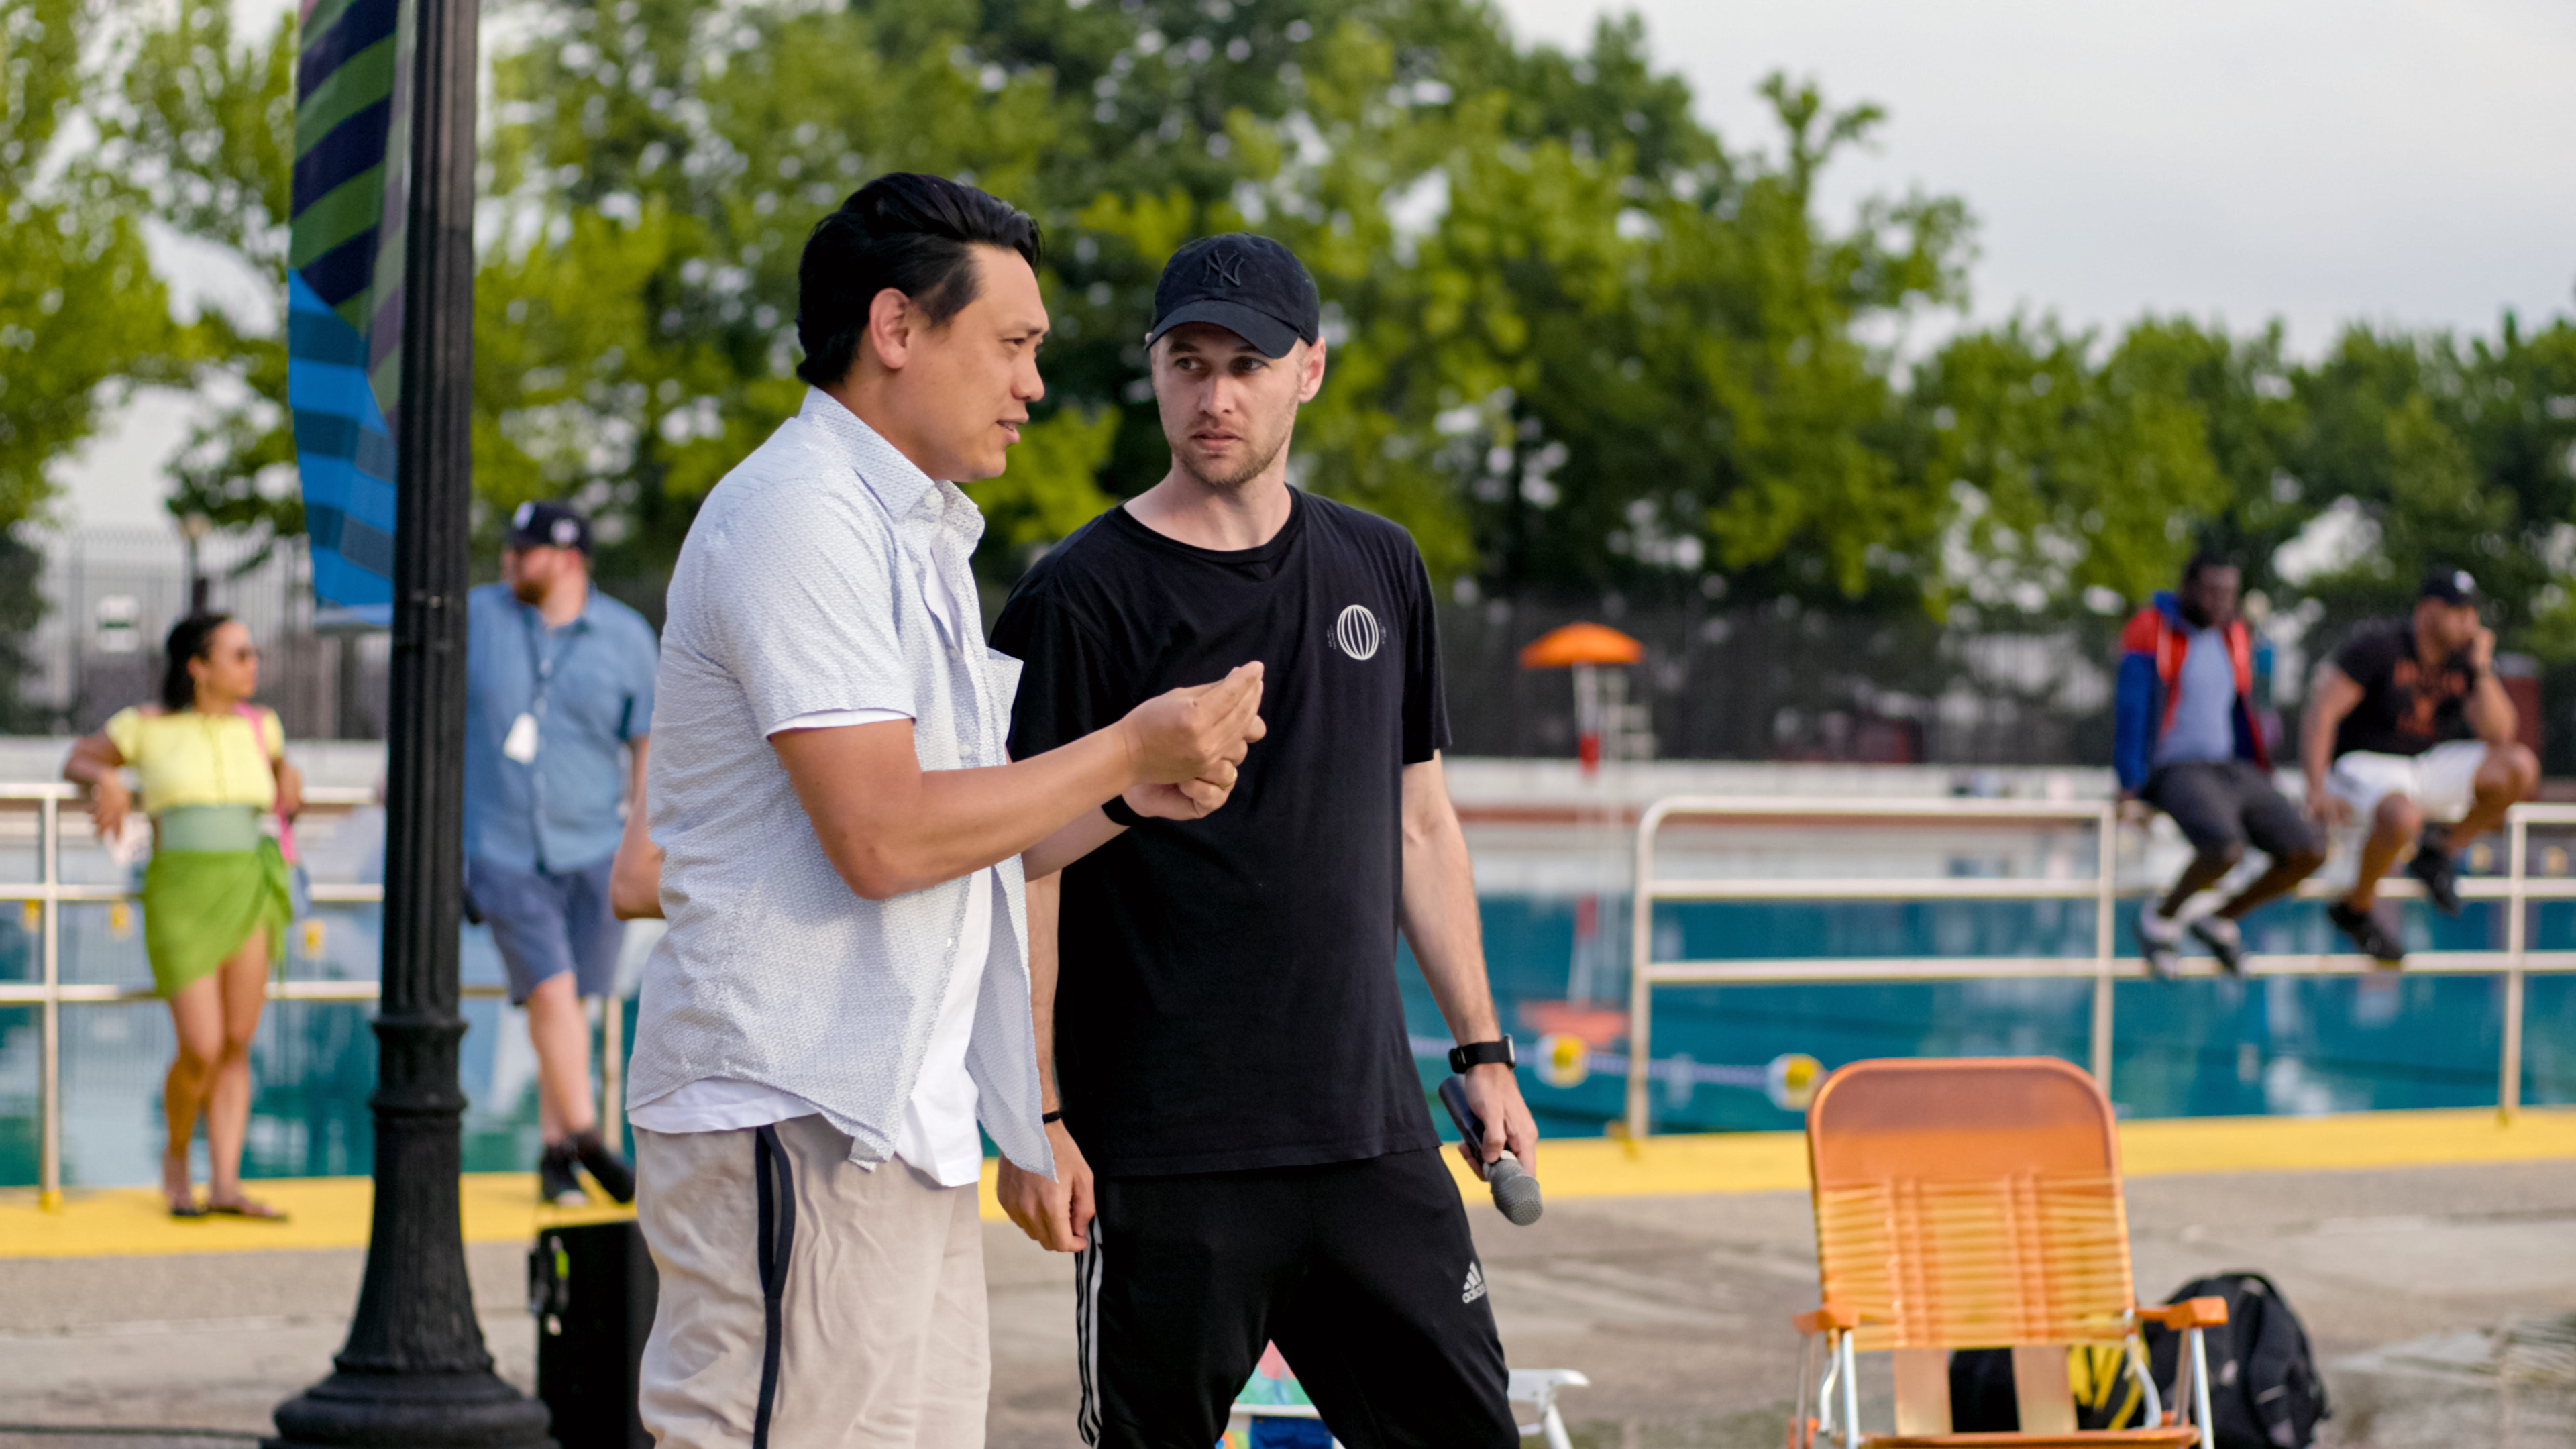 In the Heights: Jon M. Chu and choreographer Christopher Scoot